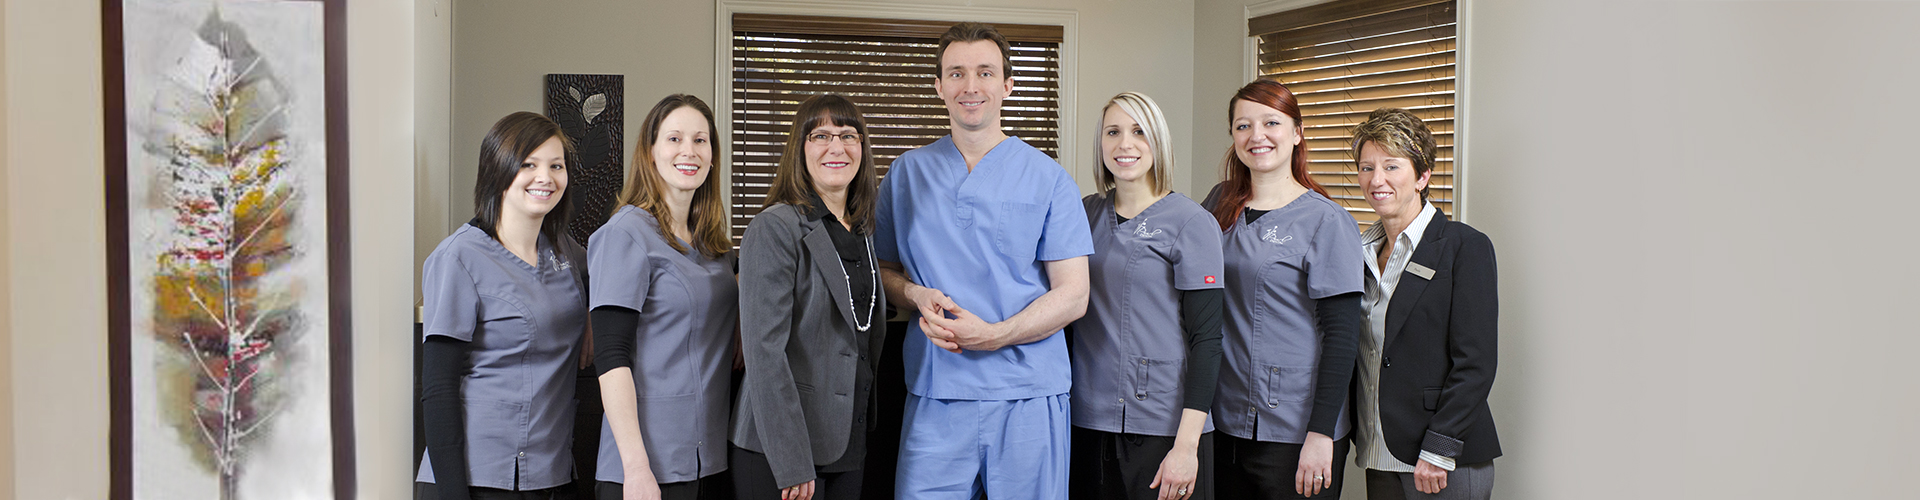 MEET THE TEAM Pearl Dental